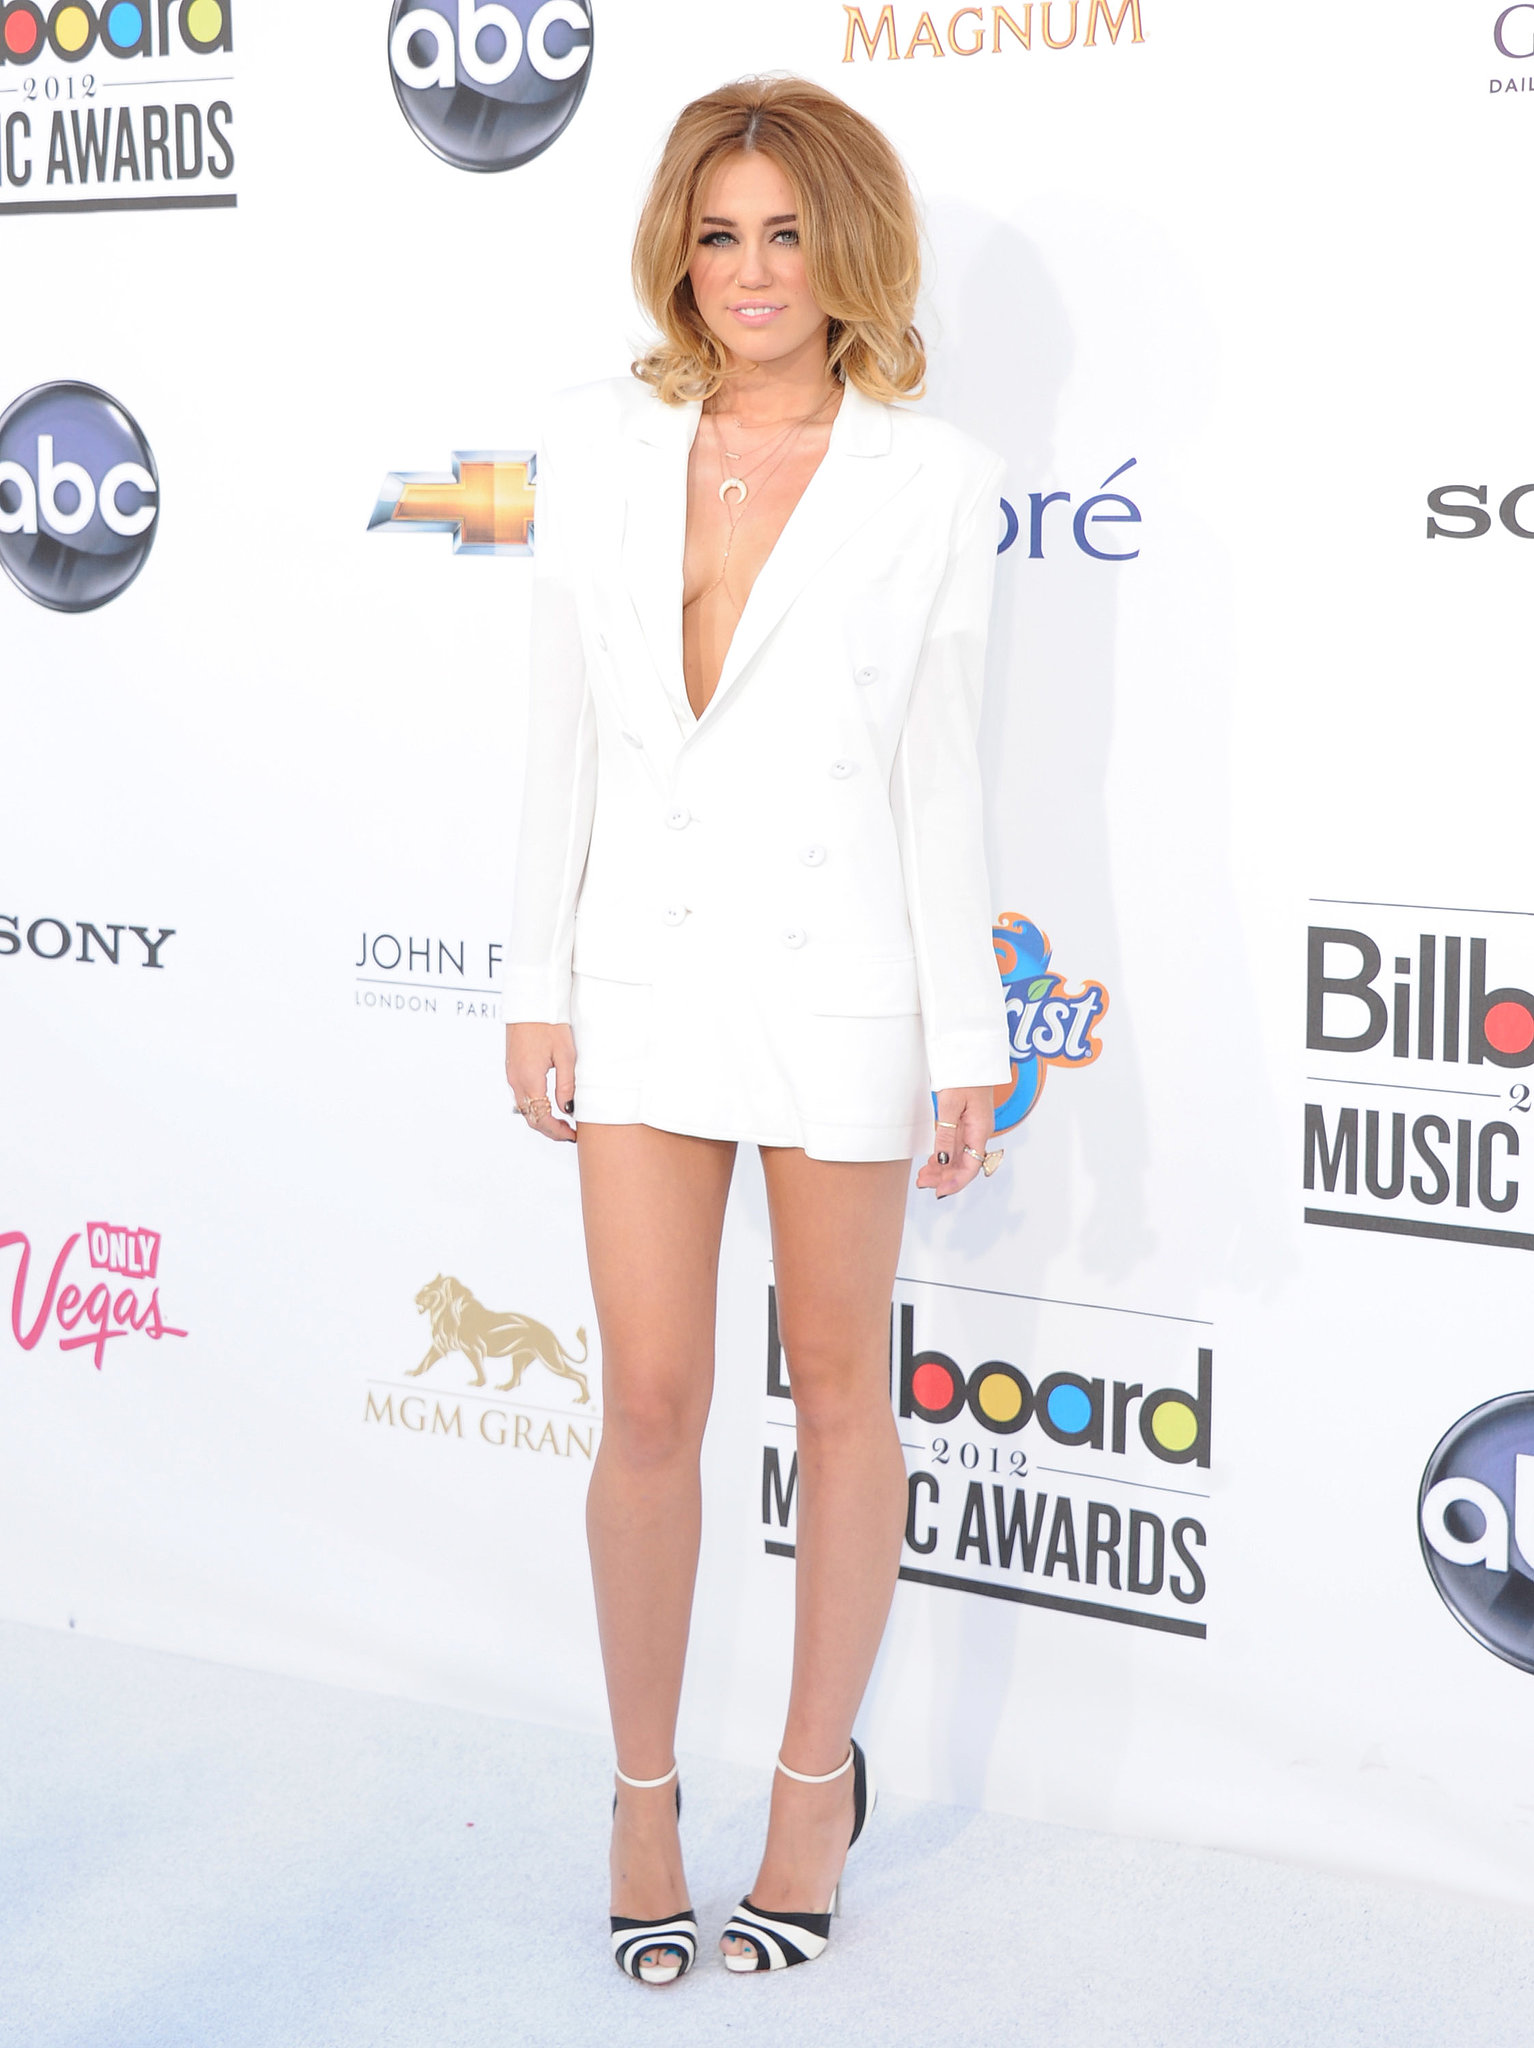 Miley sexed things up for the Billboard Music Awards in May 2012, arriving in a crisp, white Jean Paul Gaultier button-down jacket (and little else). She spiced up the plunging neckline with a Jacquie Aiche gold body chain and a pair of black-and-white striped Christian Louboutin heels.